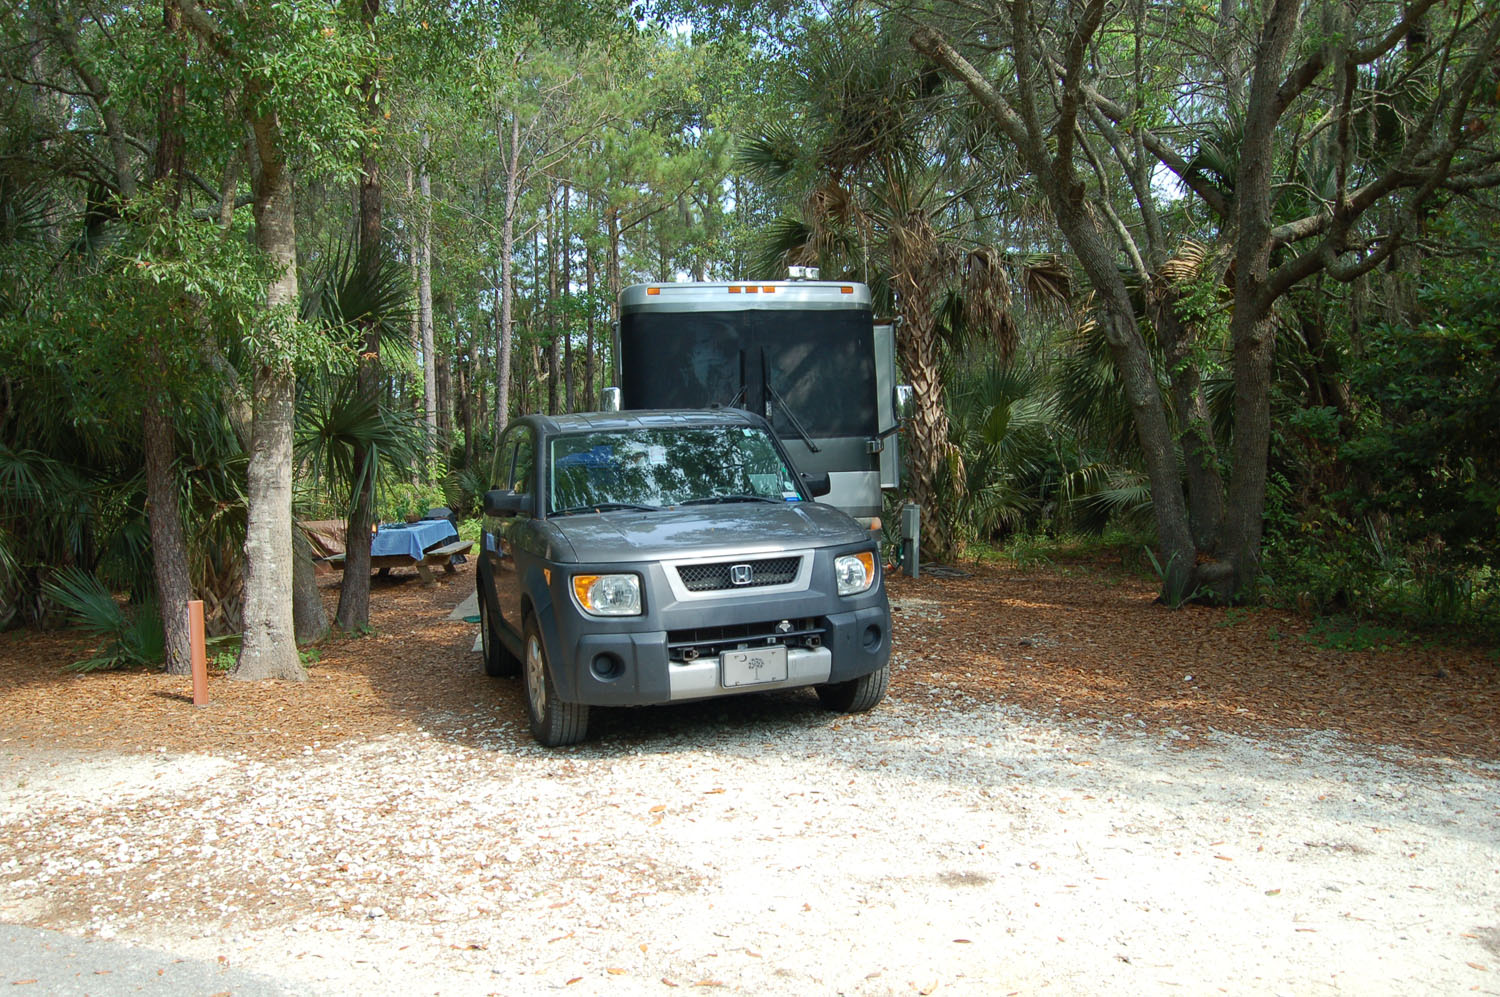 Image of campsite #46 at the Campground at James Island County Park